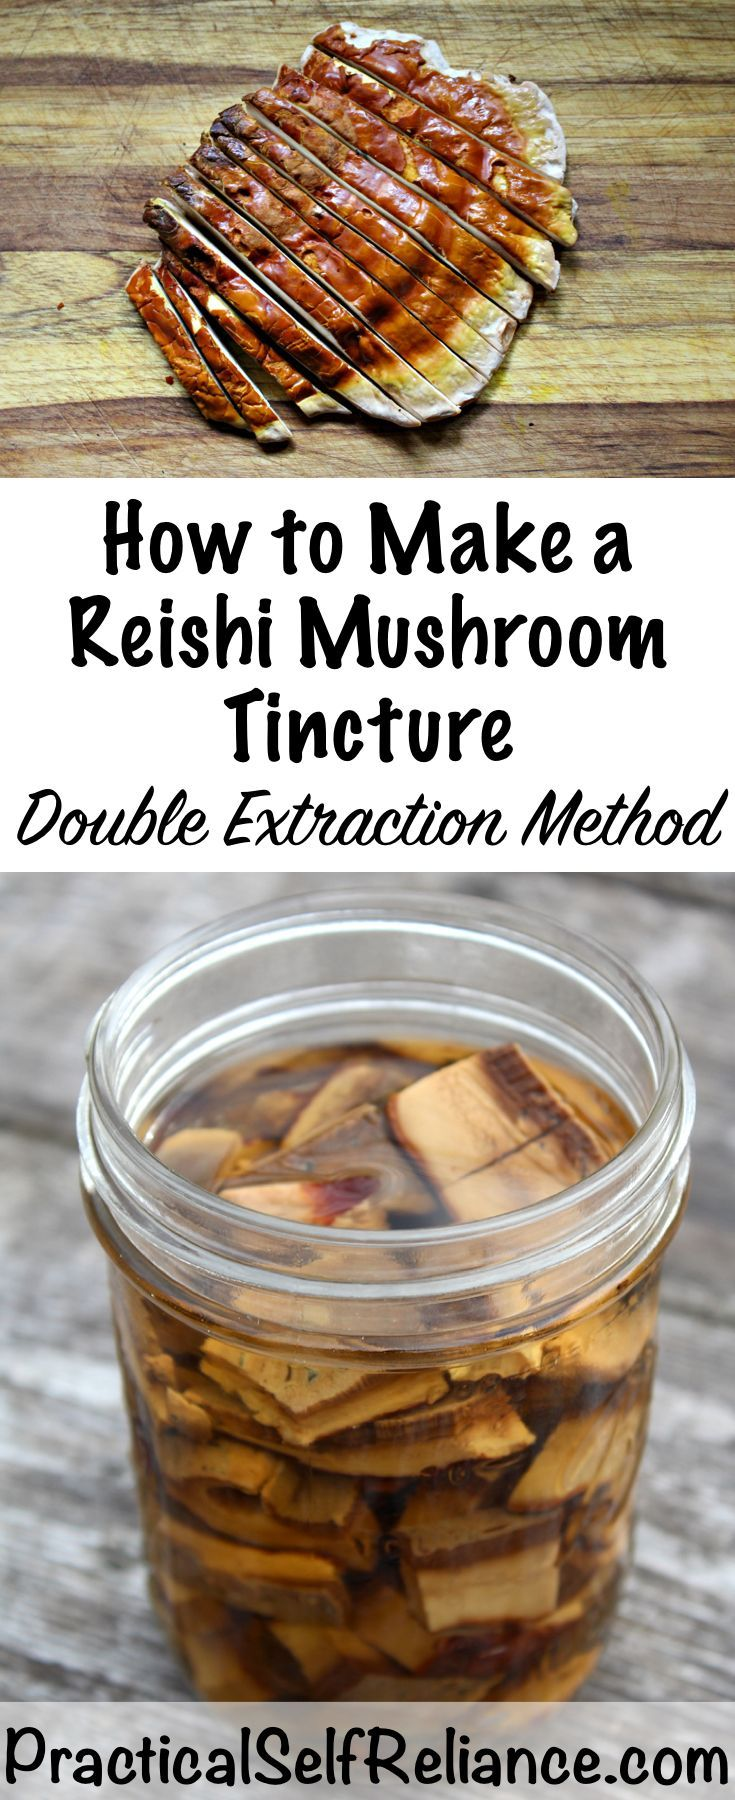 How to Make a Reishi Mushroom Tincture - Double Extraction Method